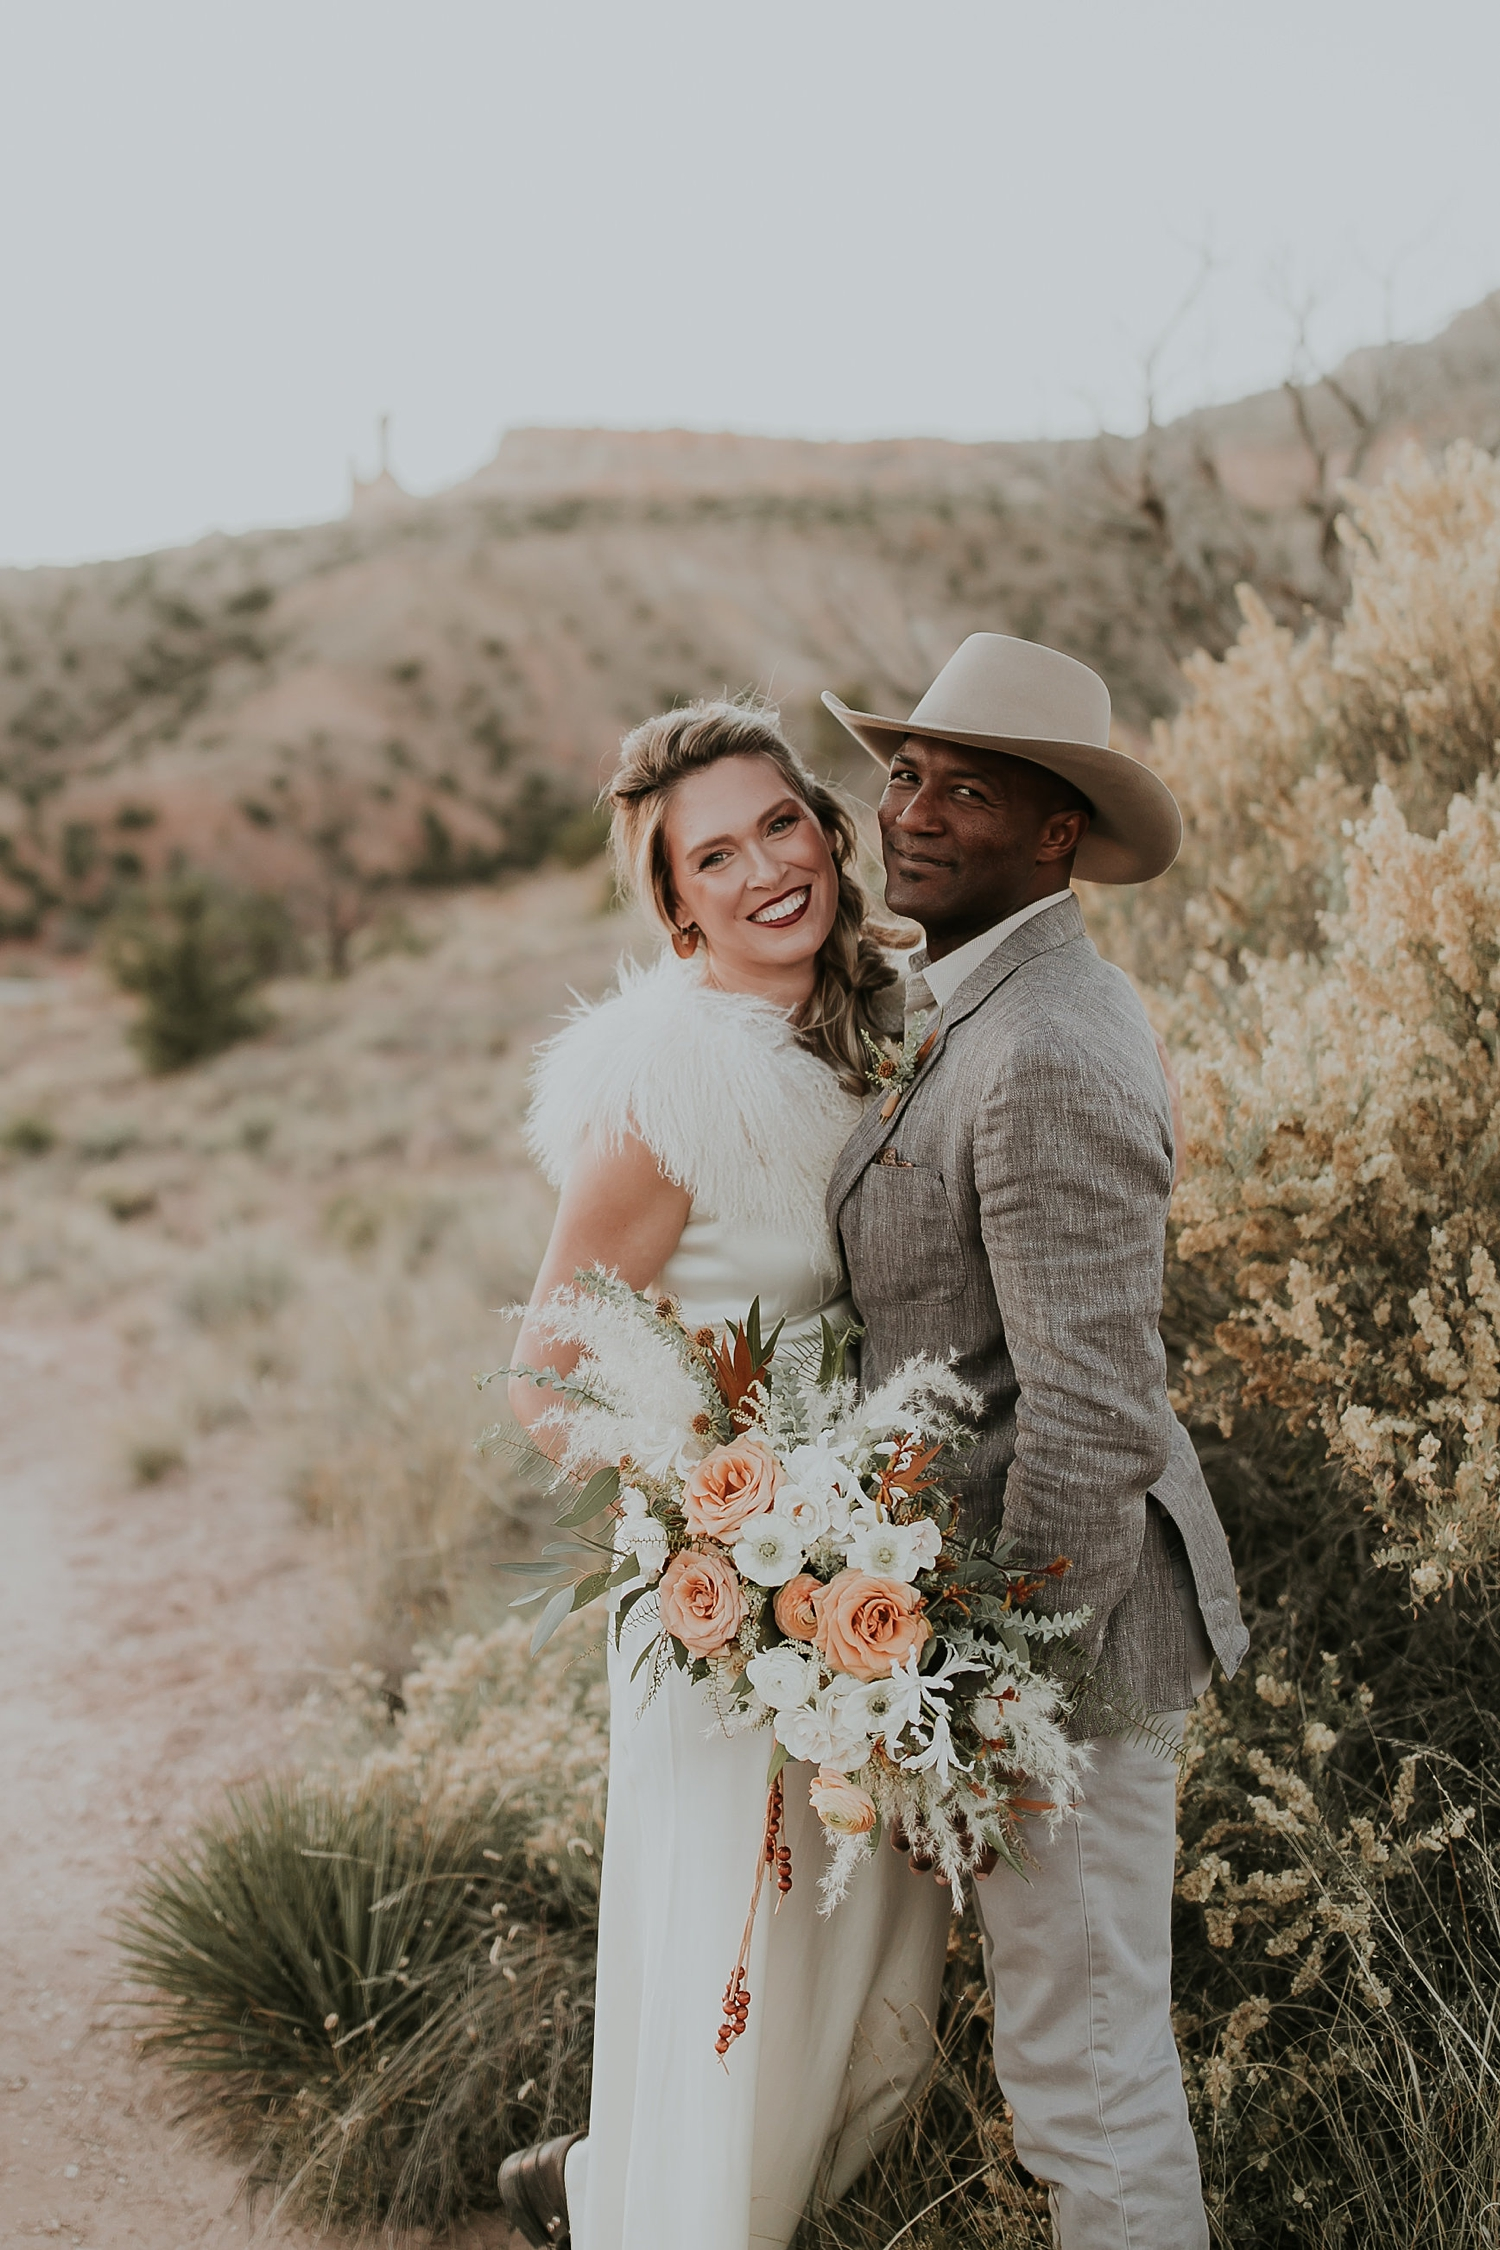 Alicia+lucia+photography+-+albuquerque+wedding+photographer+-+santa+fe+wedding+photography+-+new+mexico+wedding+photographer+-+new+mexico+ghost+ranch+wedding+-+styled+wedding+shoot_0077.jpg